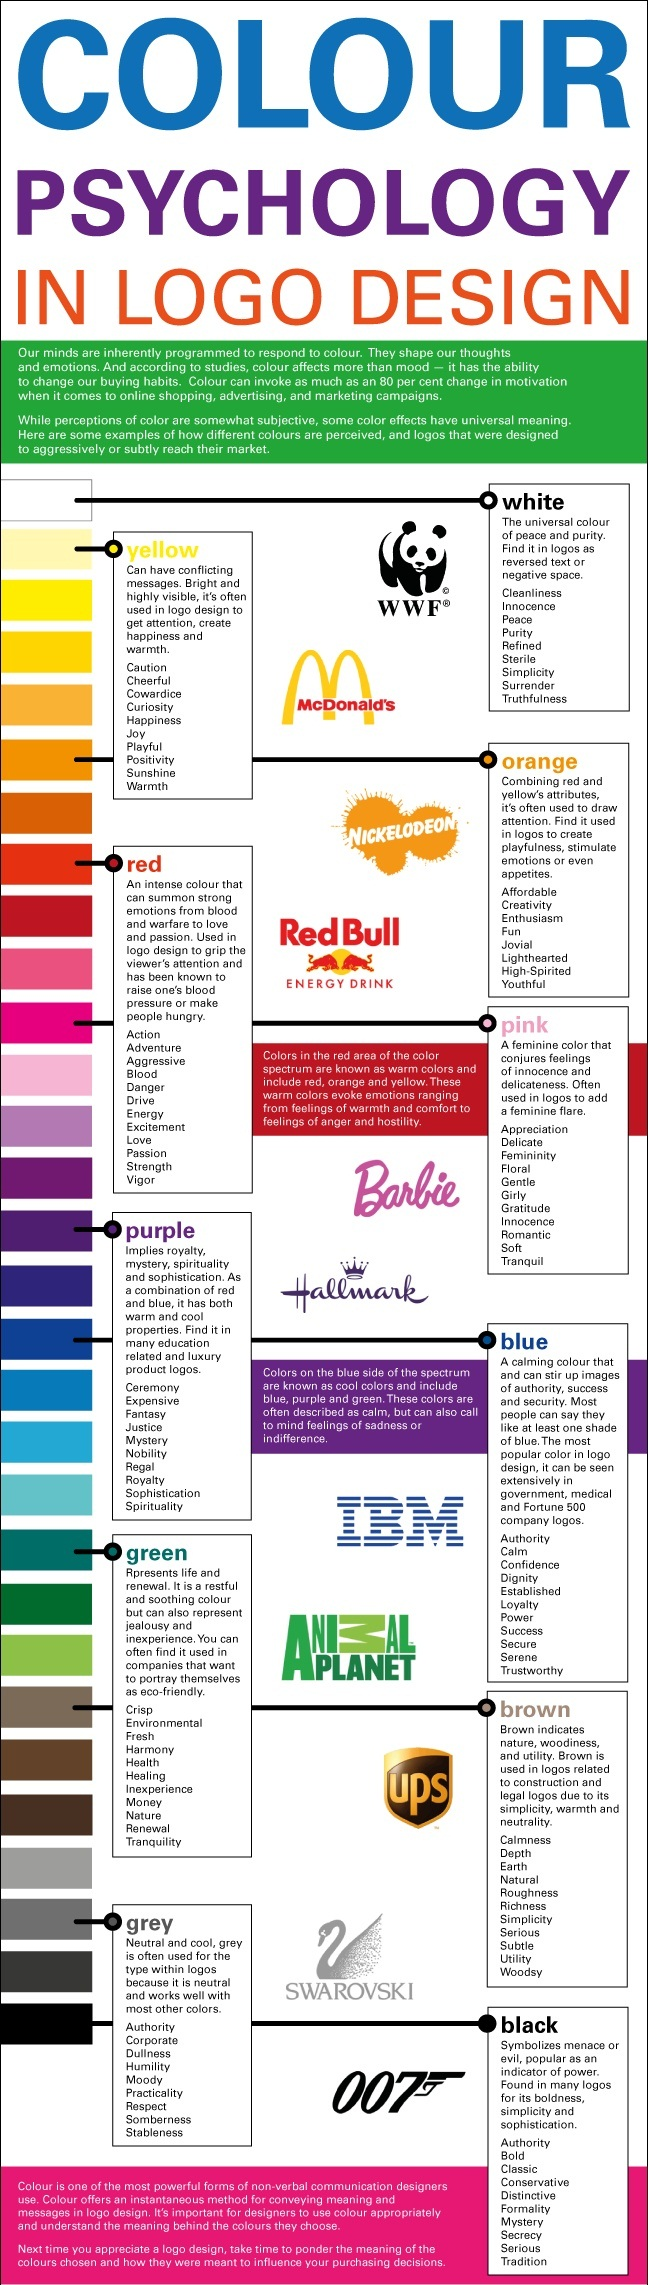 color psychology brand colors